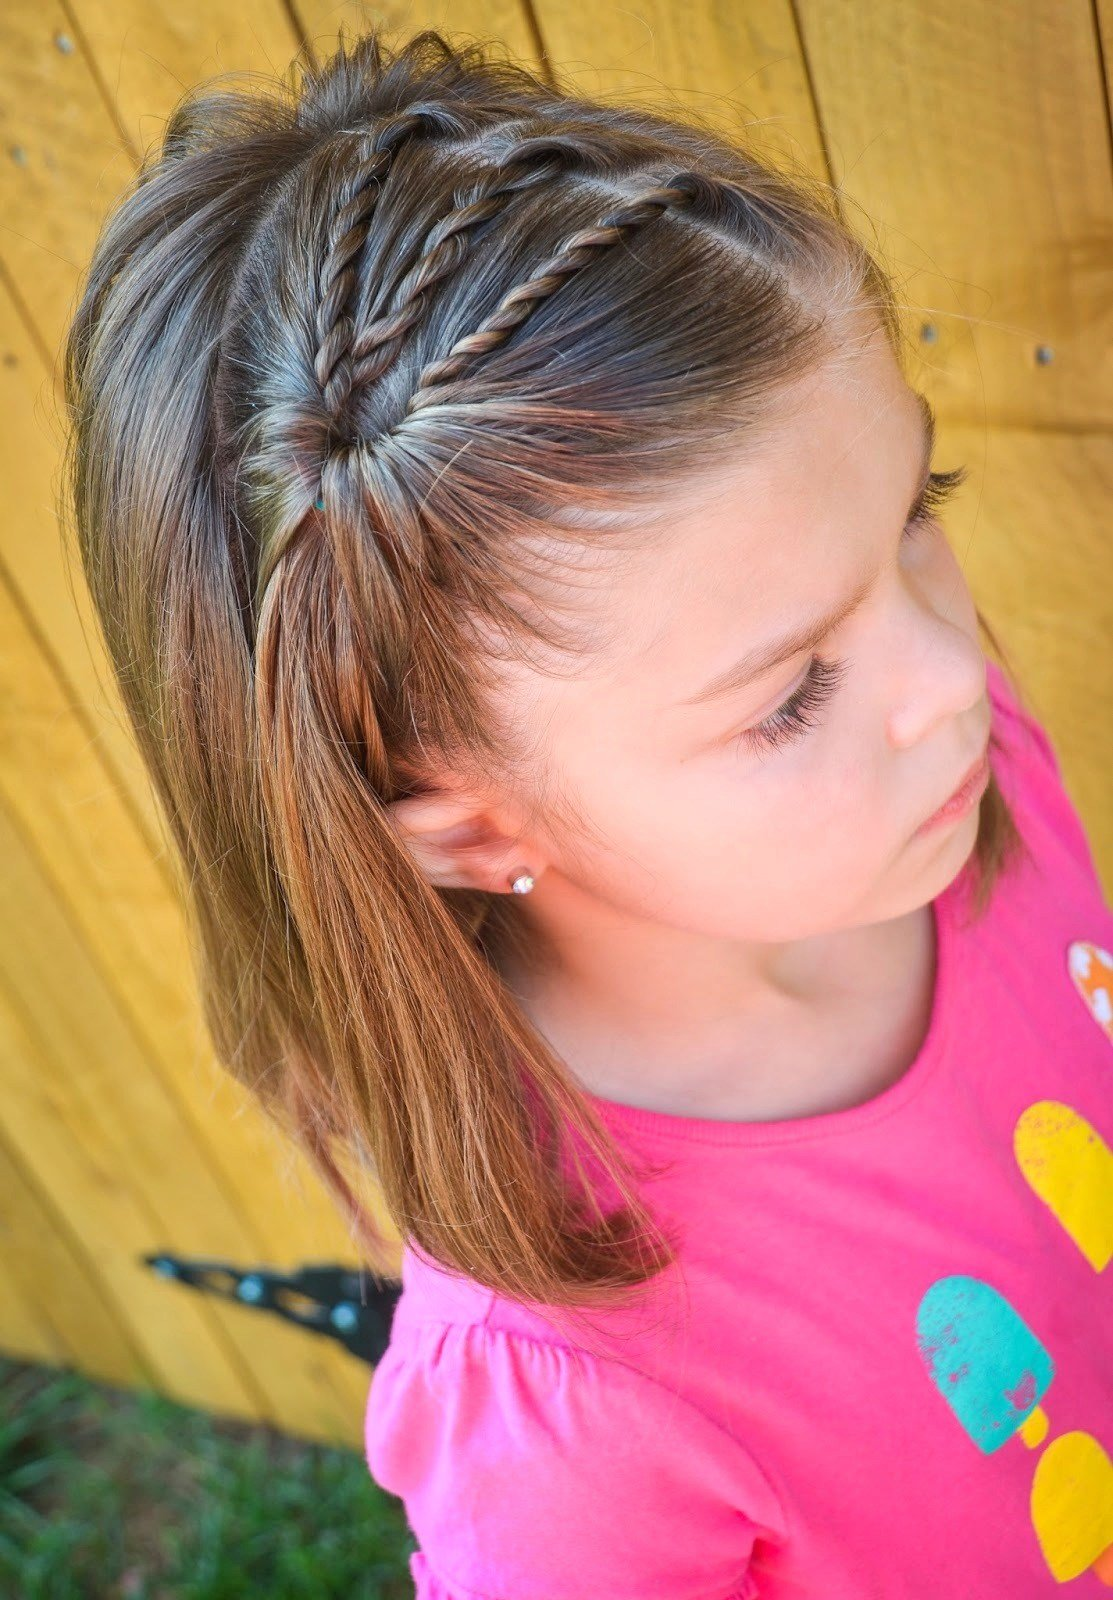 New 25 Little Girl Hairstyles You Can Do Yourself Ideas With Pictures